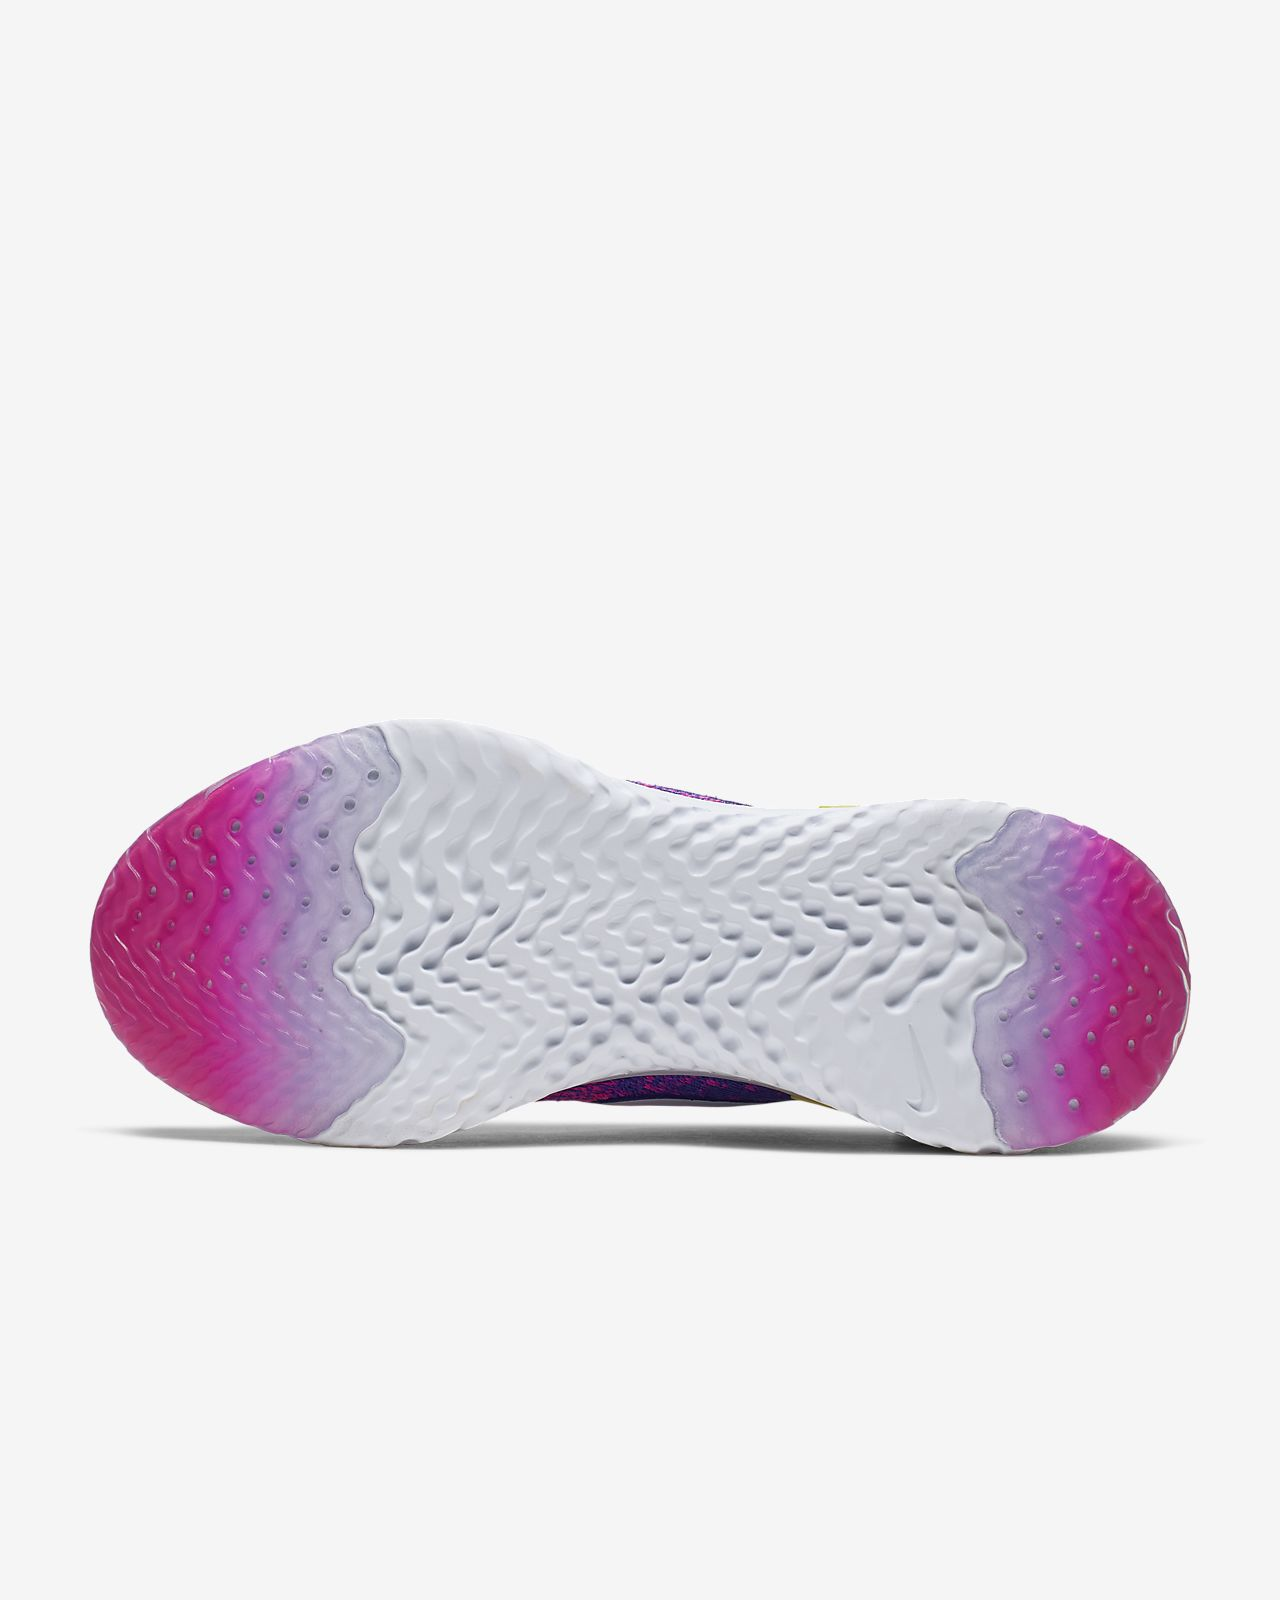 Details about Nike Wmns Epic React Flyknit 2 White Pink Foam Women Running Shoes BQ8927 101